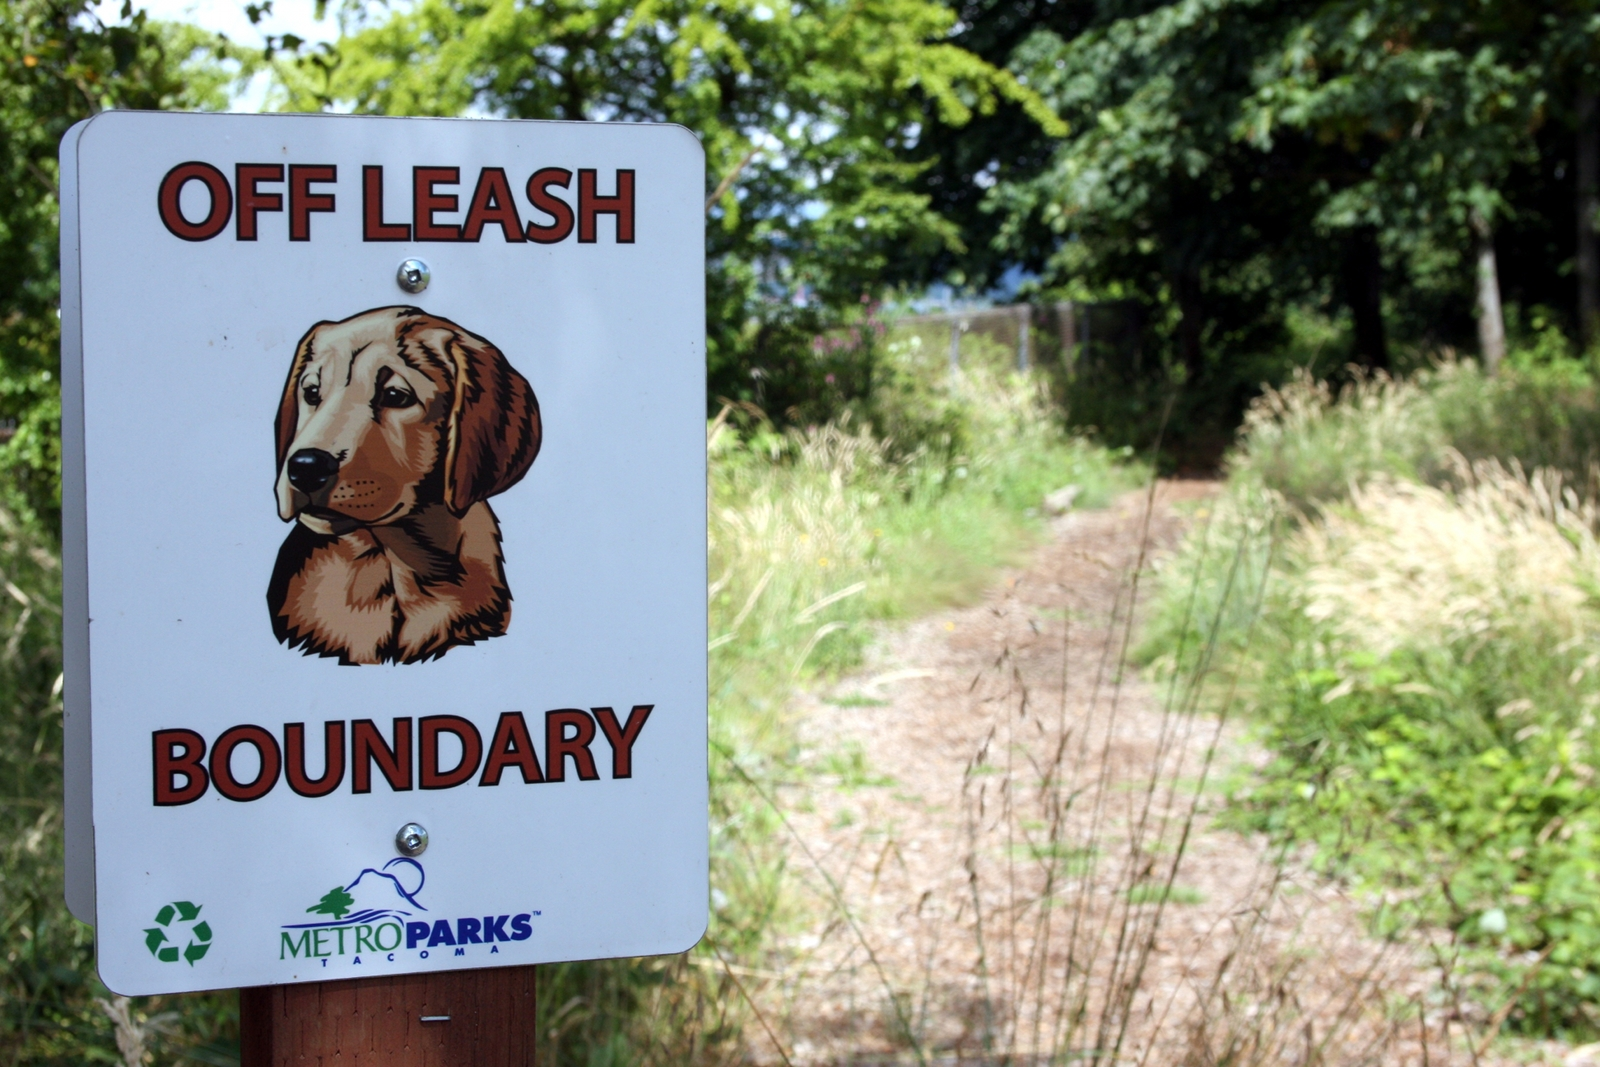 Within the past couple years, an off-leash dog area was designated in McKinley Park in a forested location with a trail leading down to a fenced area just beside Interstate 5.